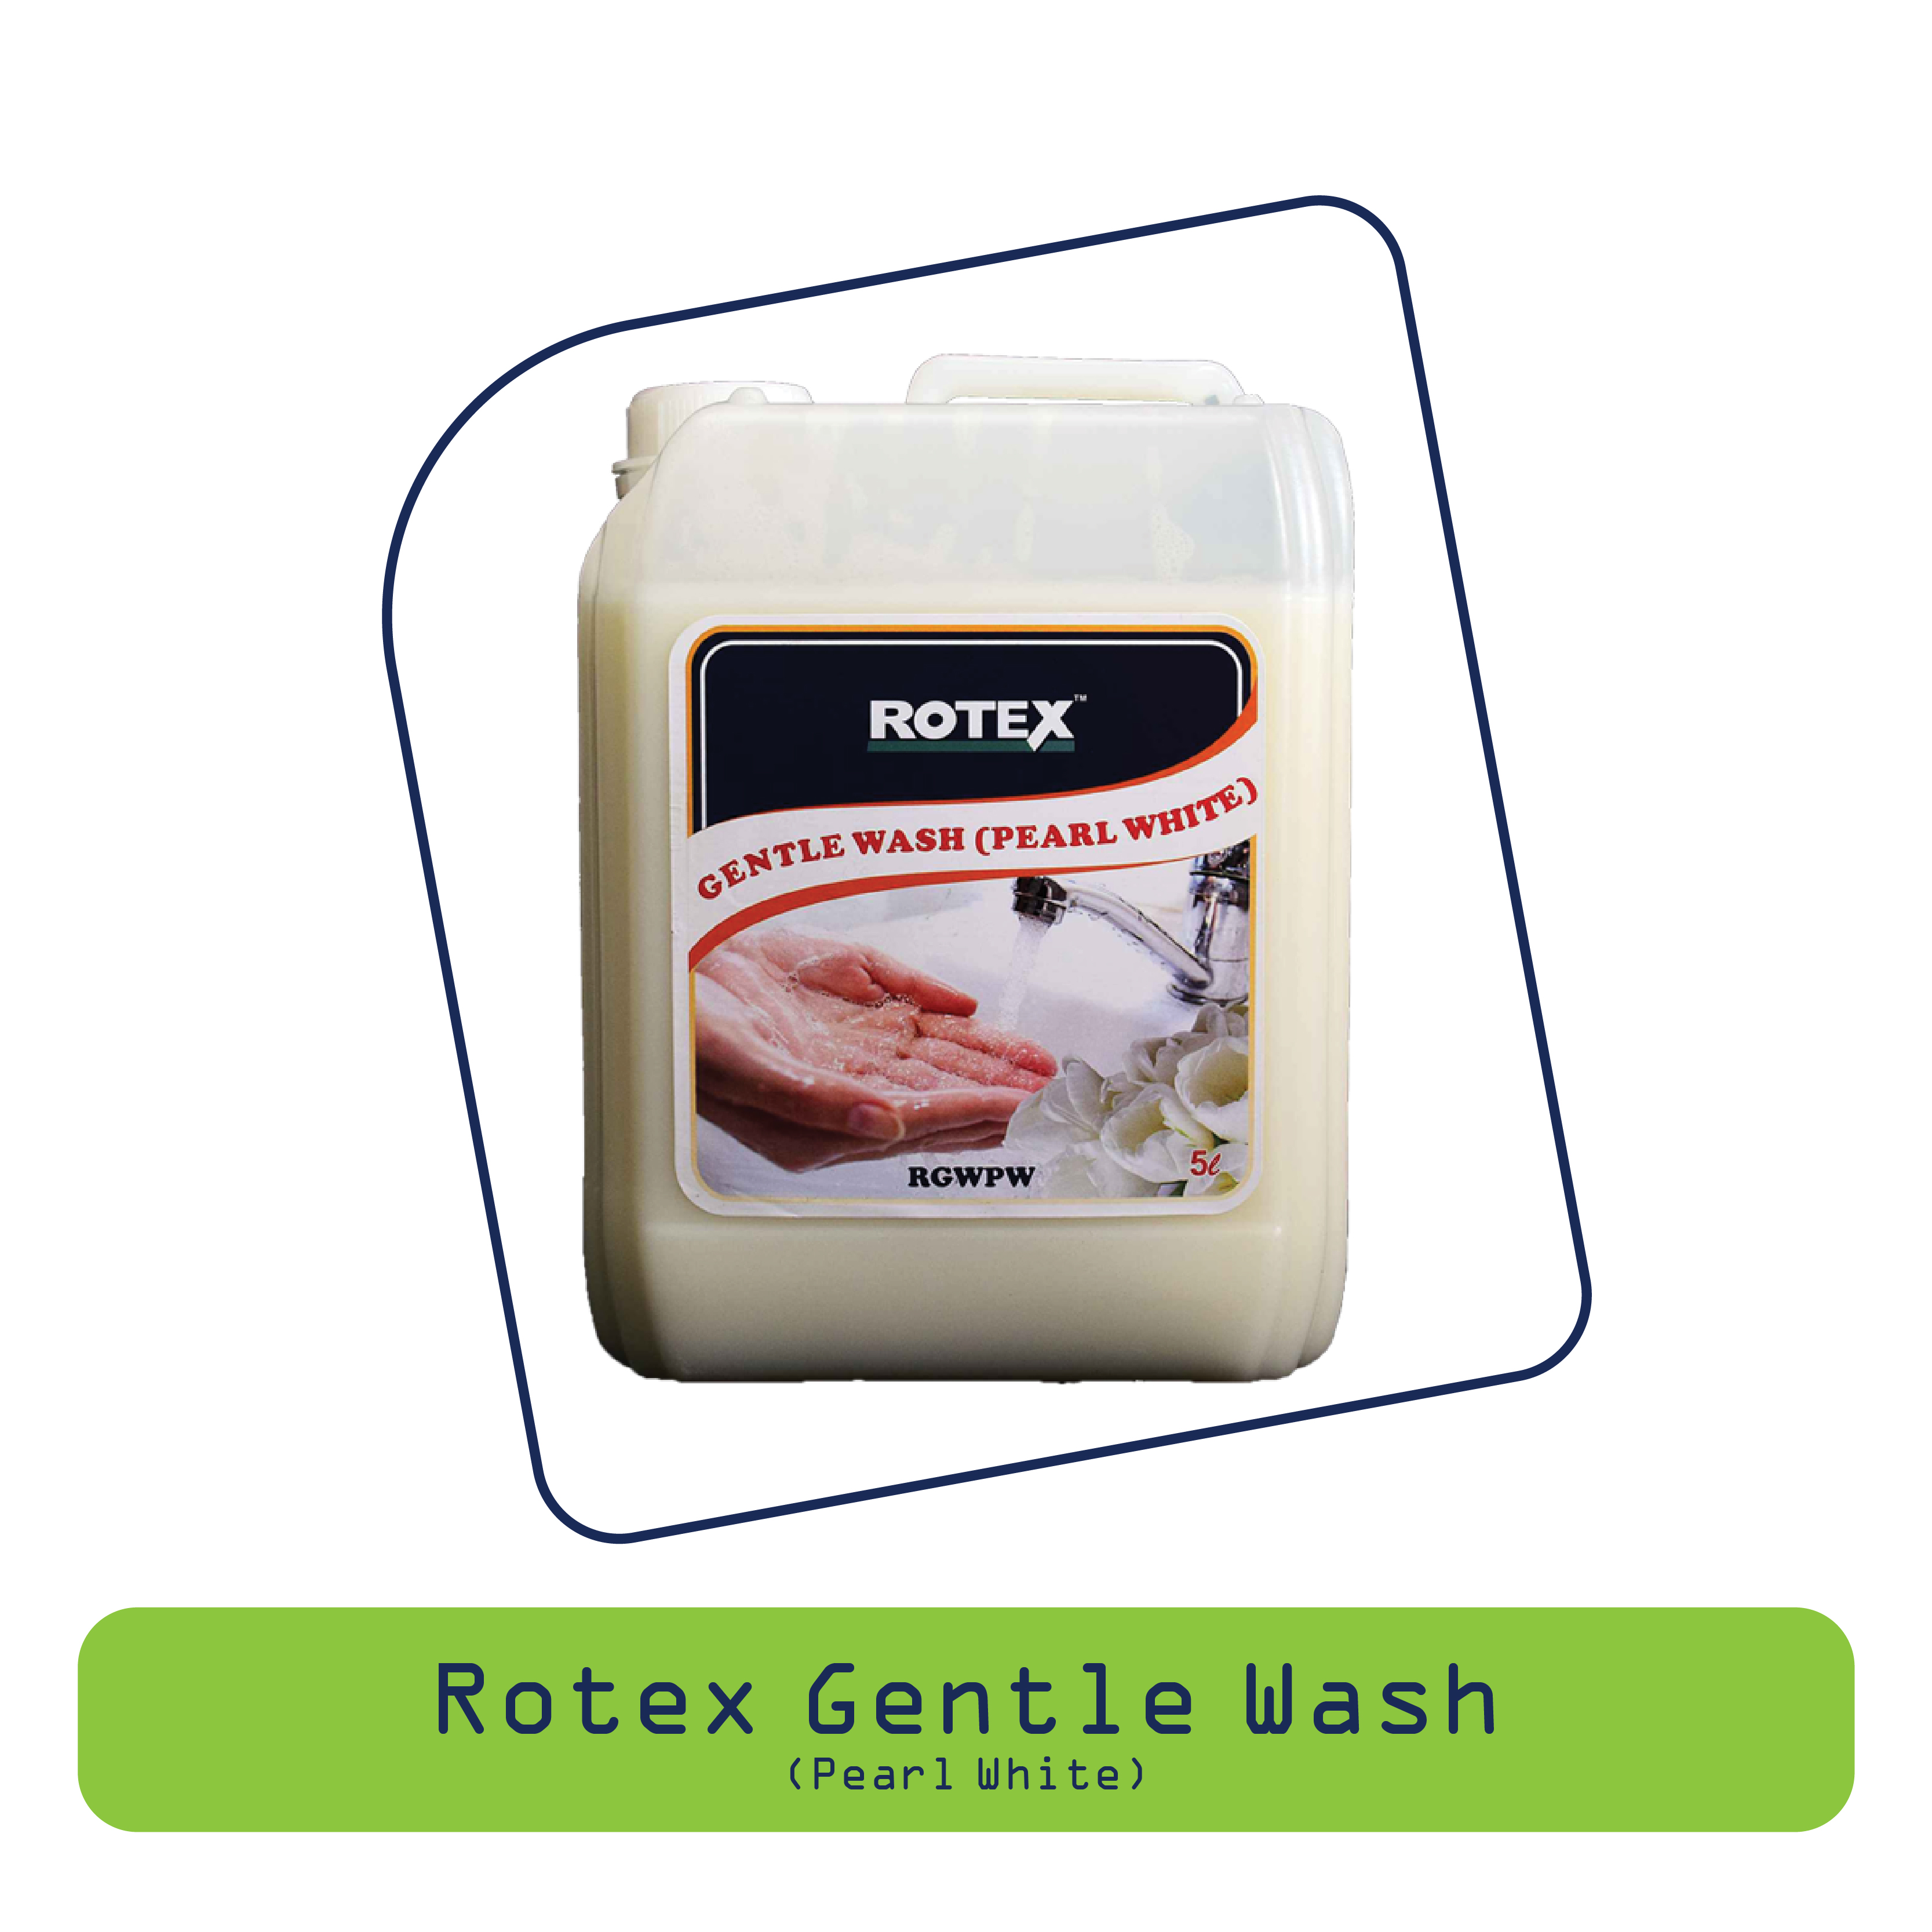 Rotex Gentle Wash (Pearl White)